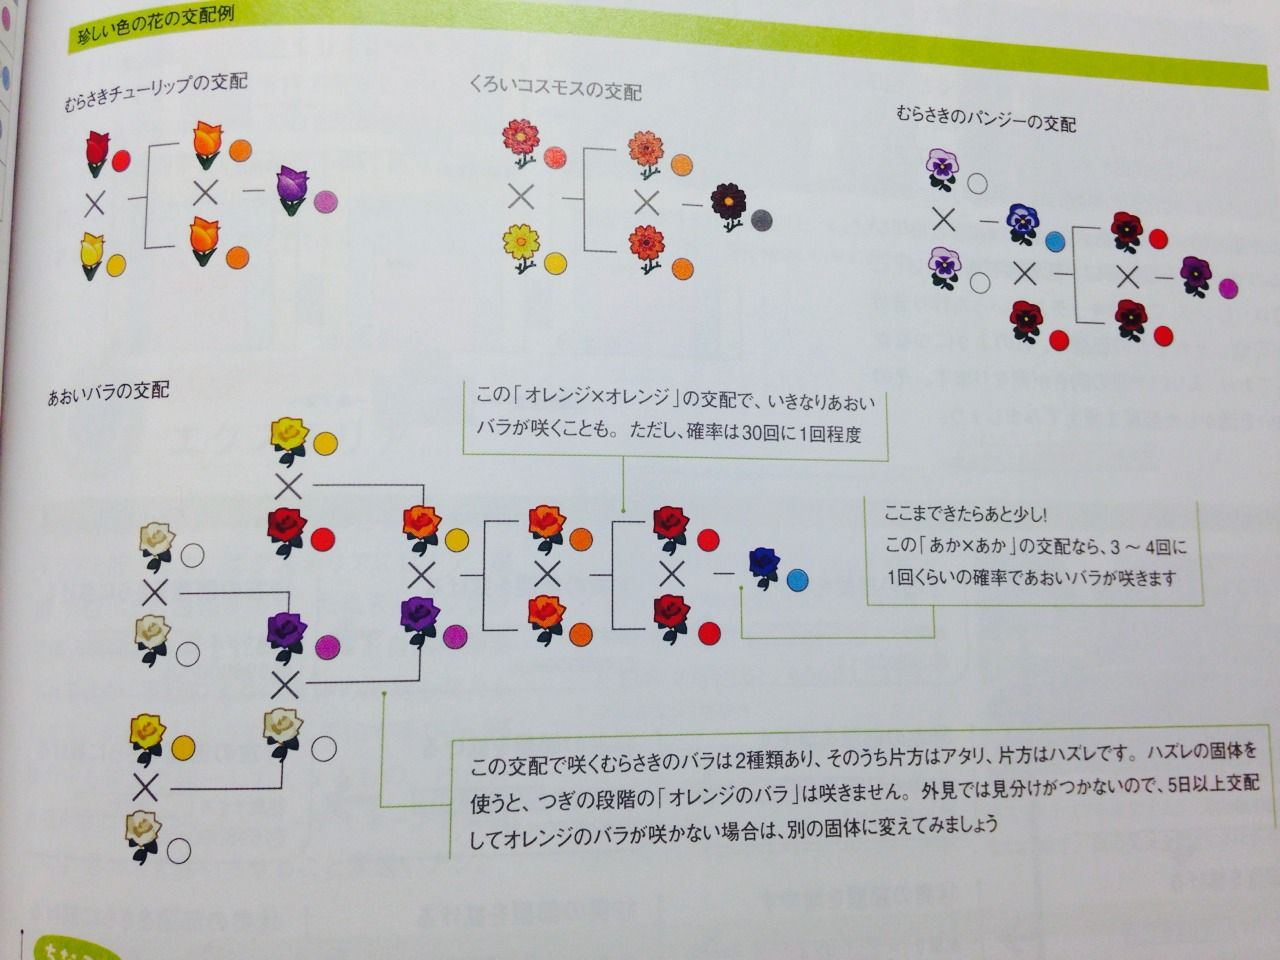 Flower breeding guide. It's in Japanese but you get the